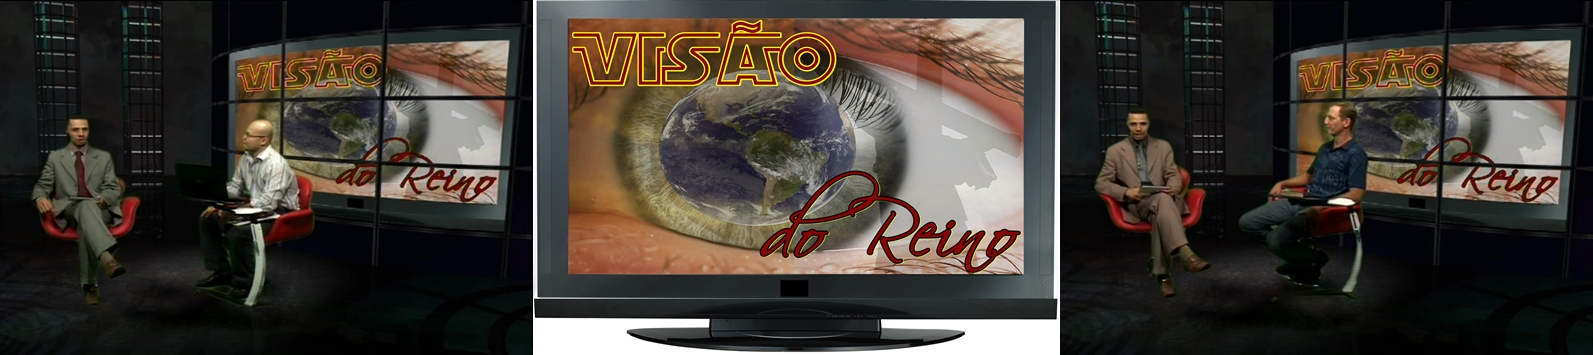 Assistir Culto ao vivo Enlace TV